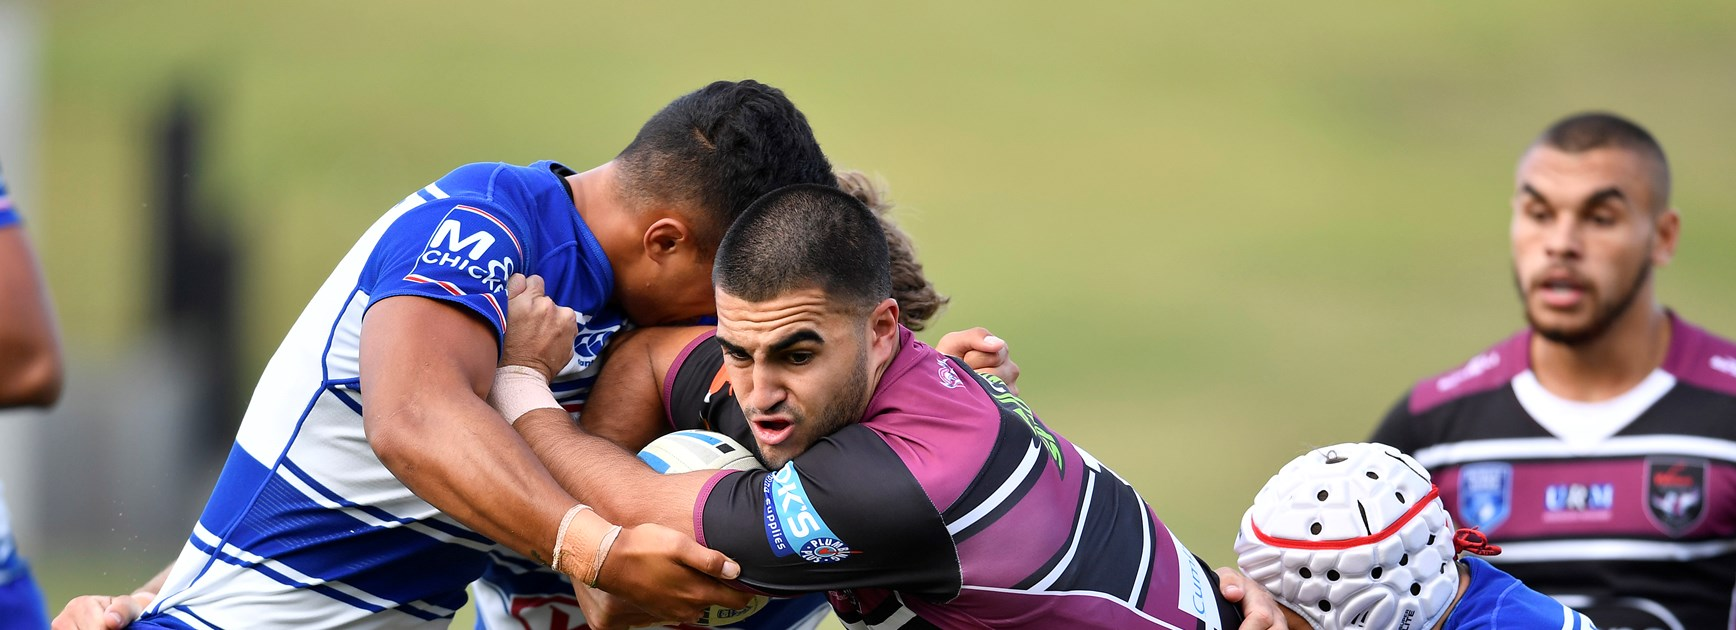 Blacktown Workers lose to Bulldogs in Intrust